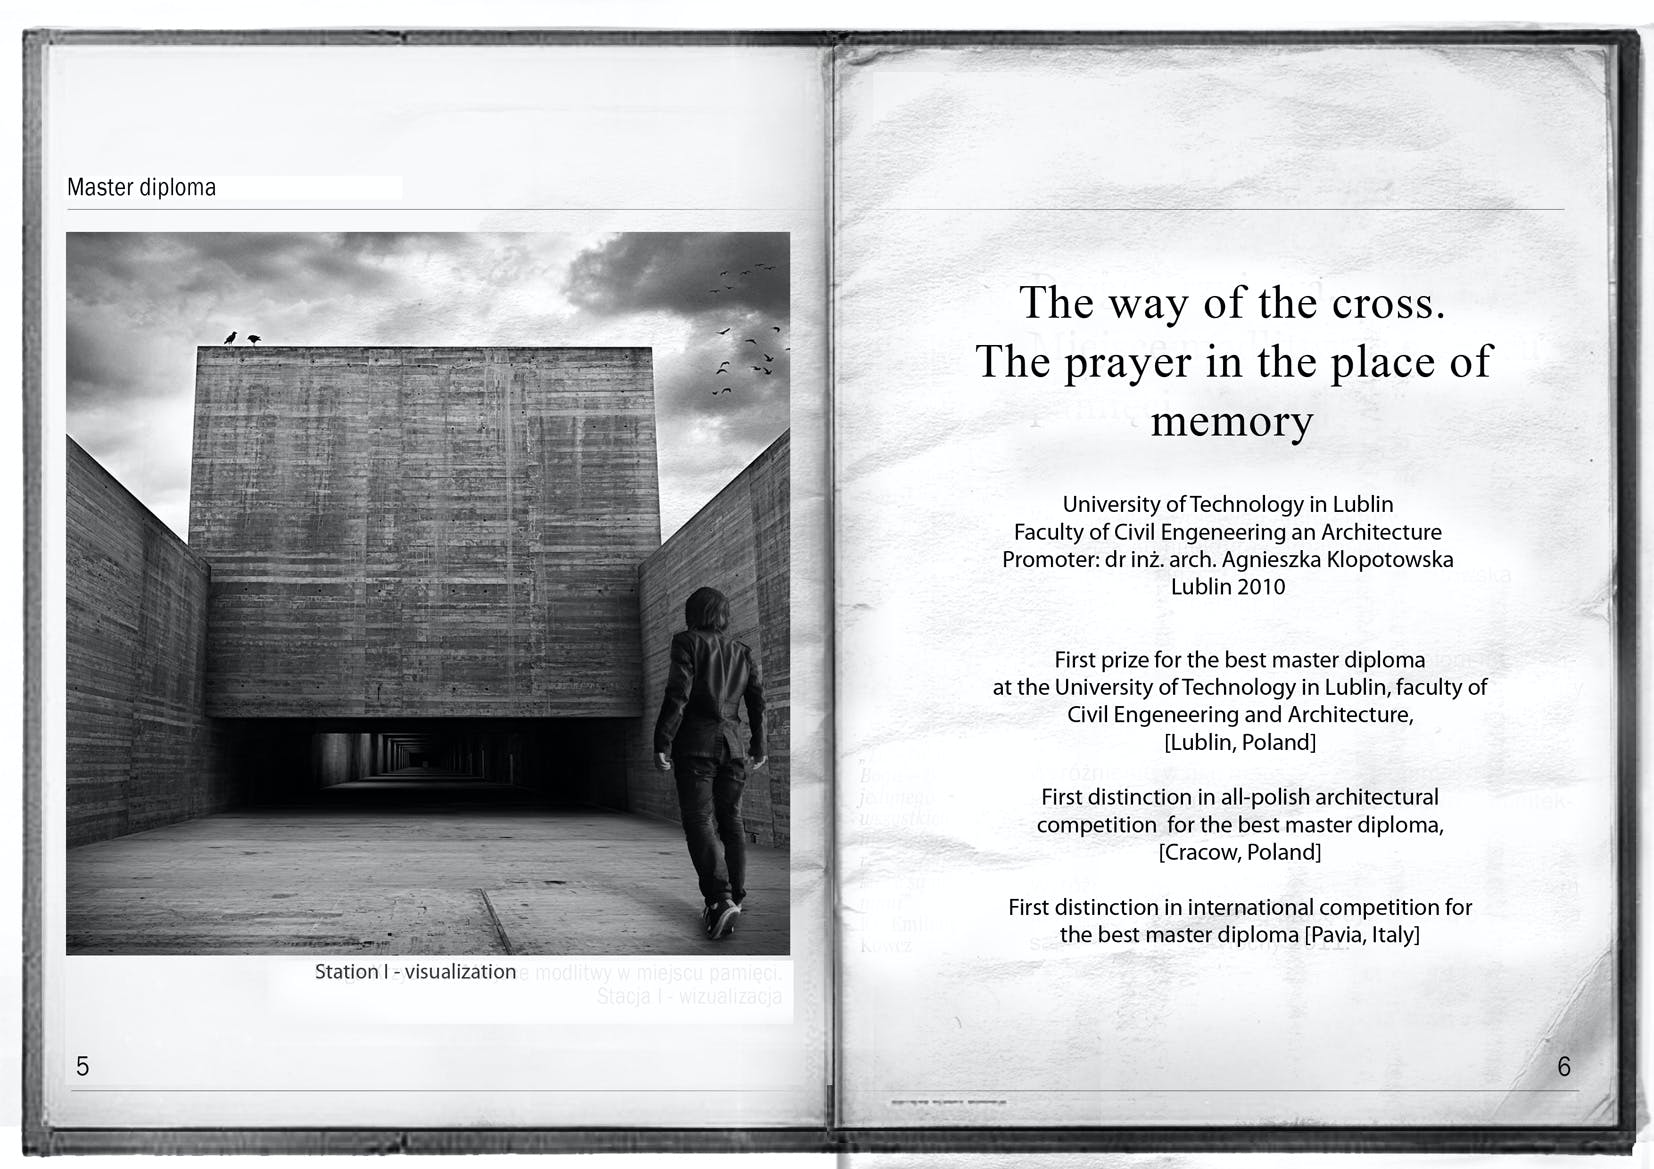 master diploma the way of the cross adam spychala archinect 6 more images ↓